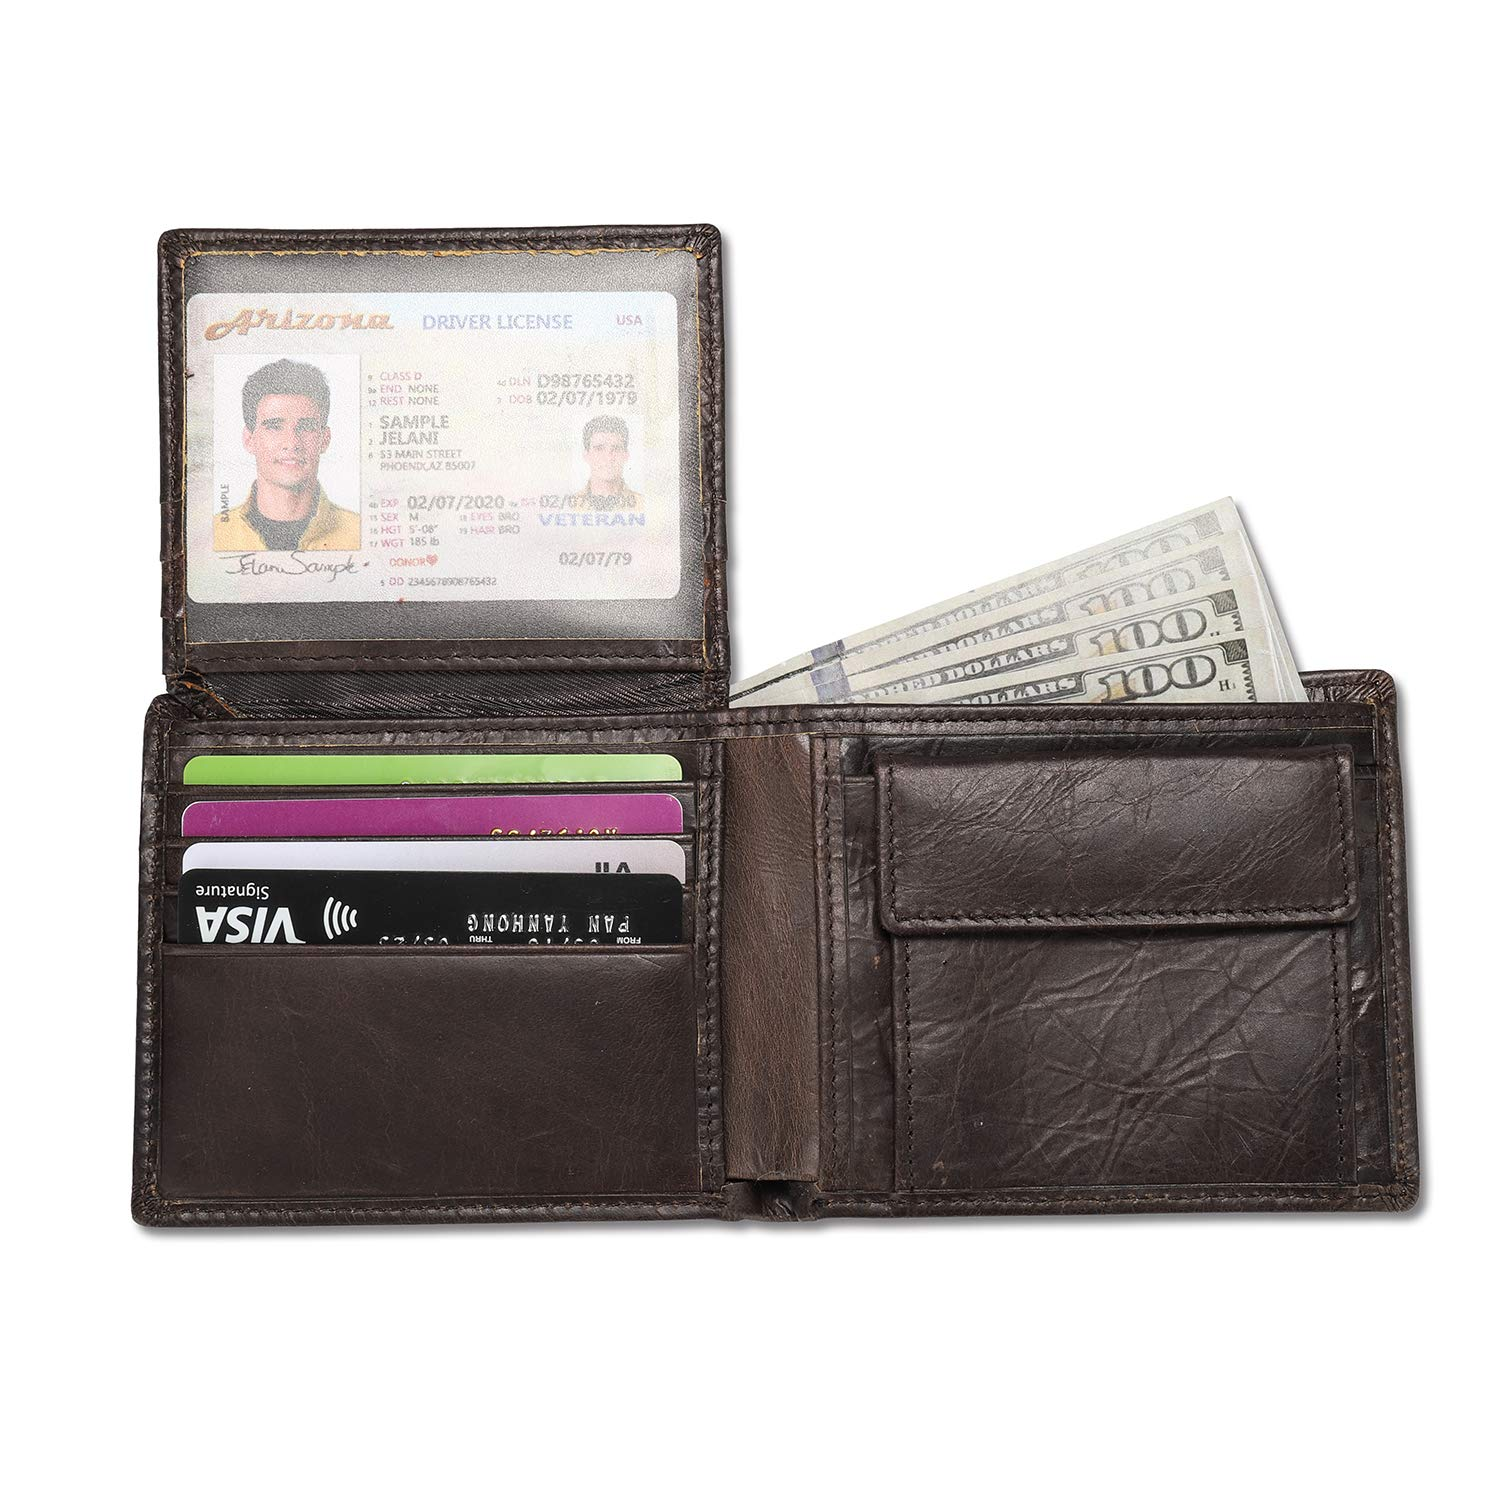 RFID Blocking Wallet for Men, Luxury Genuine Leather Bifold Wallet Credit Card Case Holder with Coin Pocket (Dark Coffee) by Peny Eidy